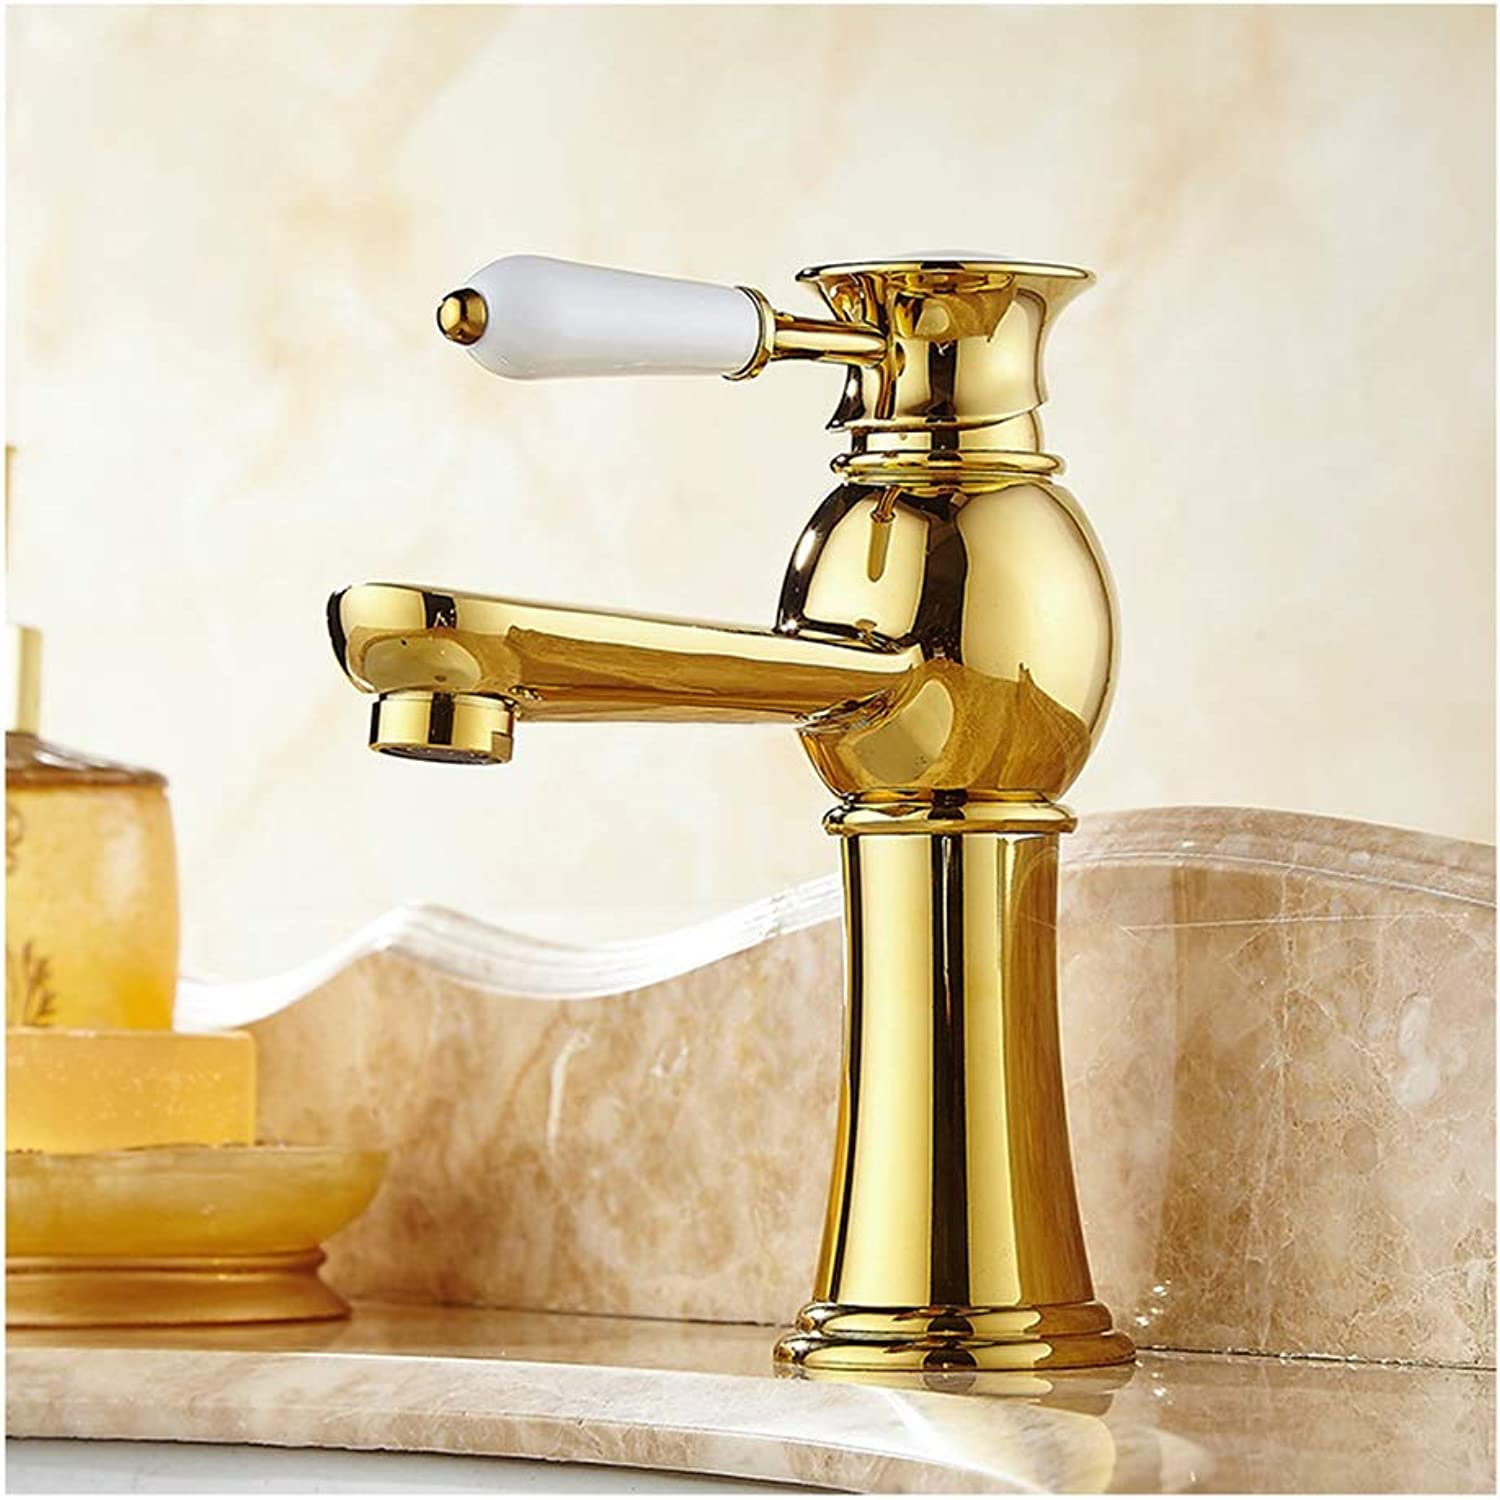 HARDY-YI Water-tap Faucet-wash Basin gold Single Hole Hot And Cold Water Faucet Basin Copper Faucet Water Mixing Valve Water Tap -184 Faucet